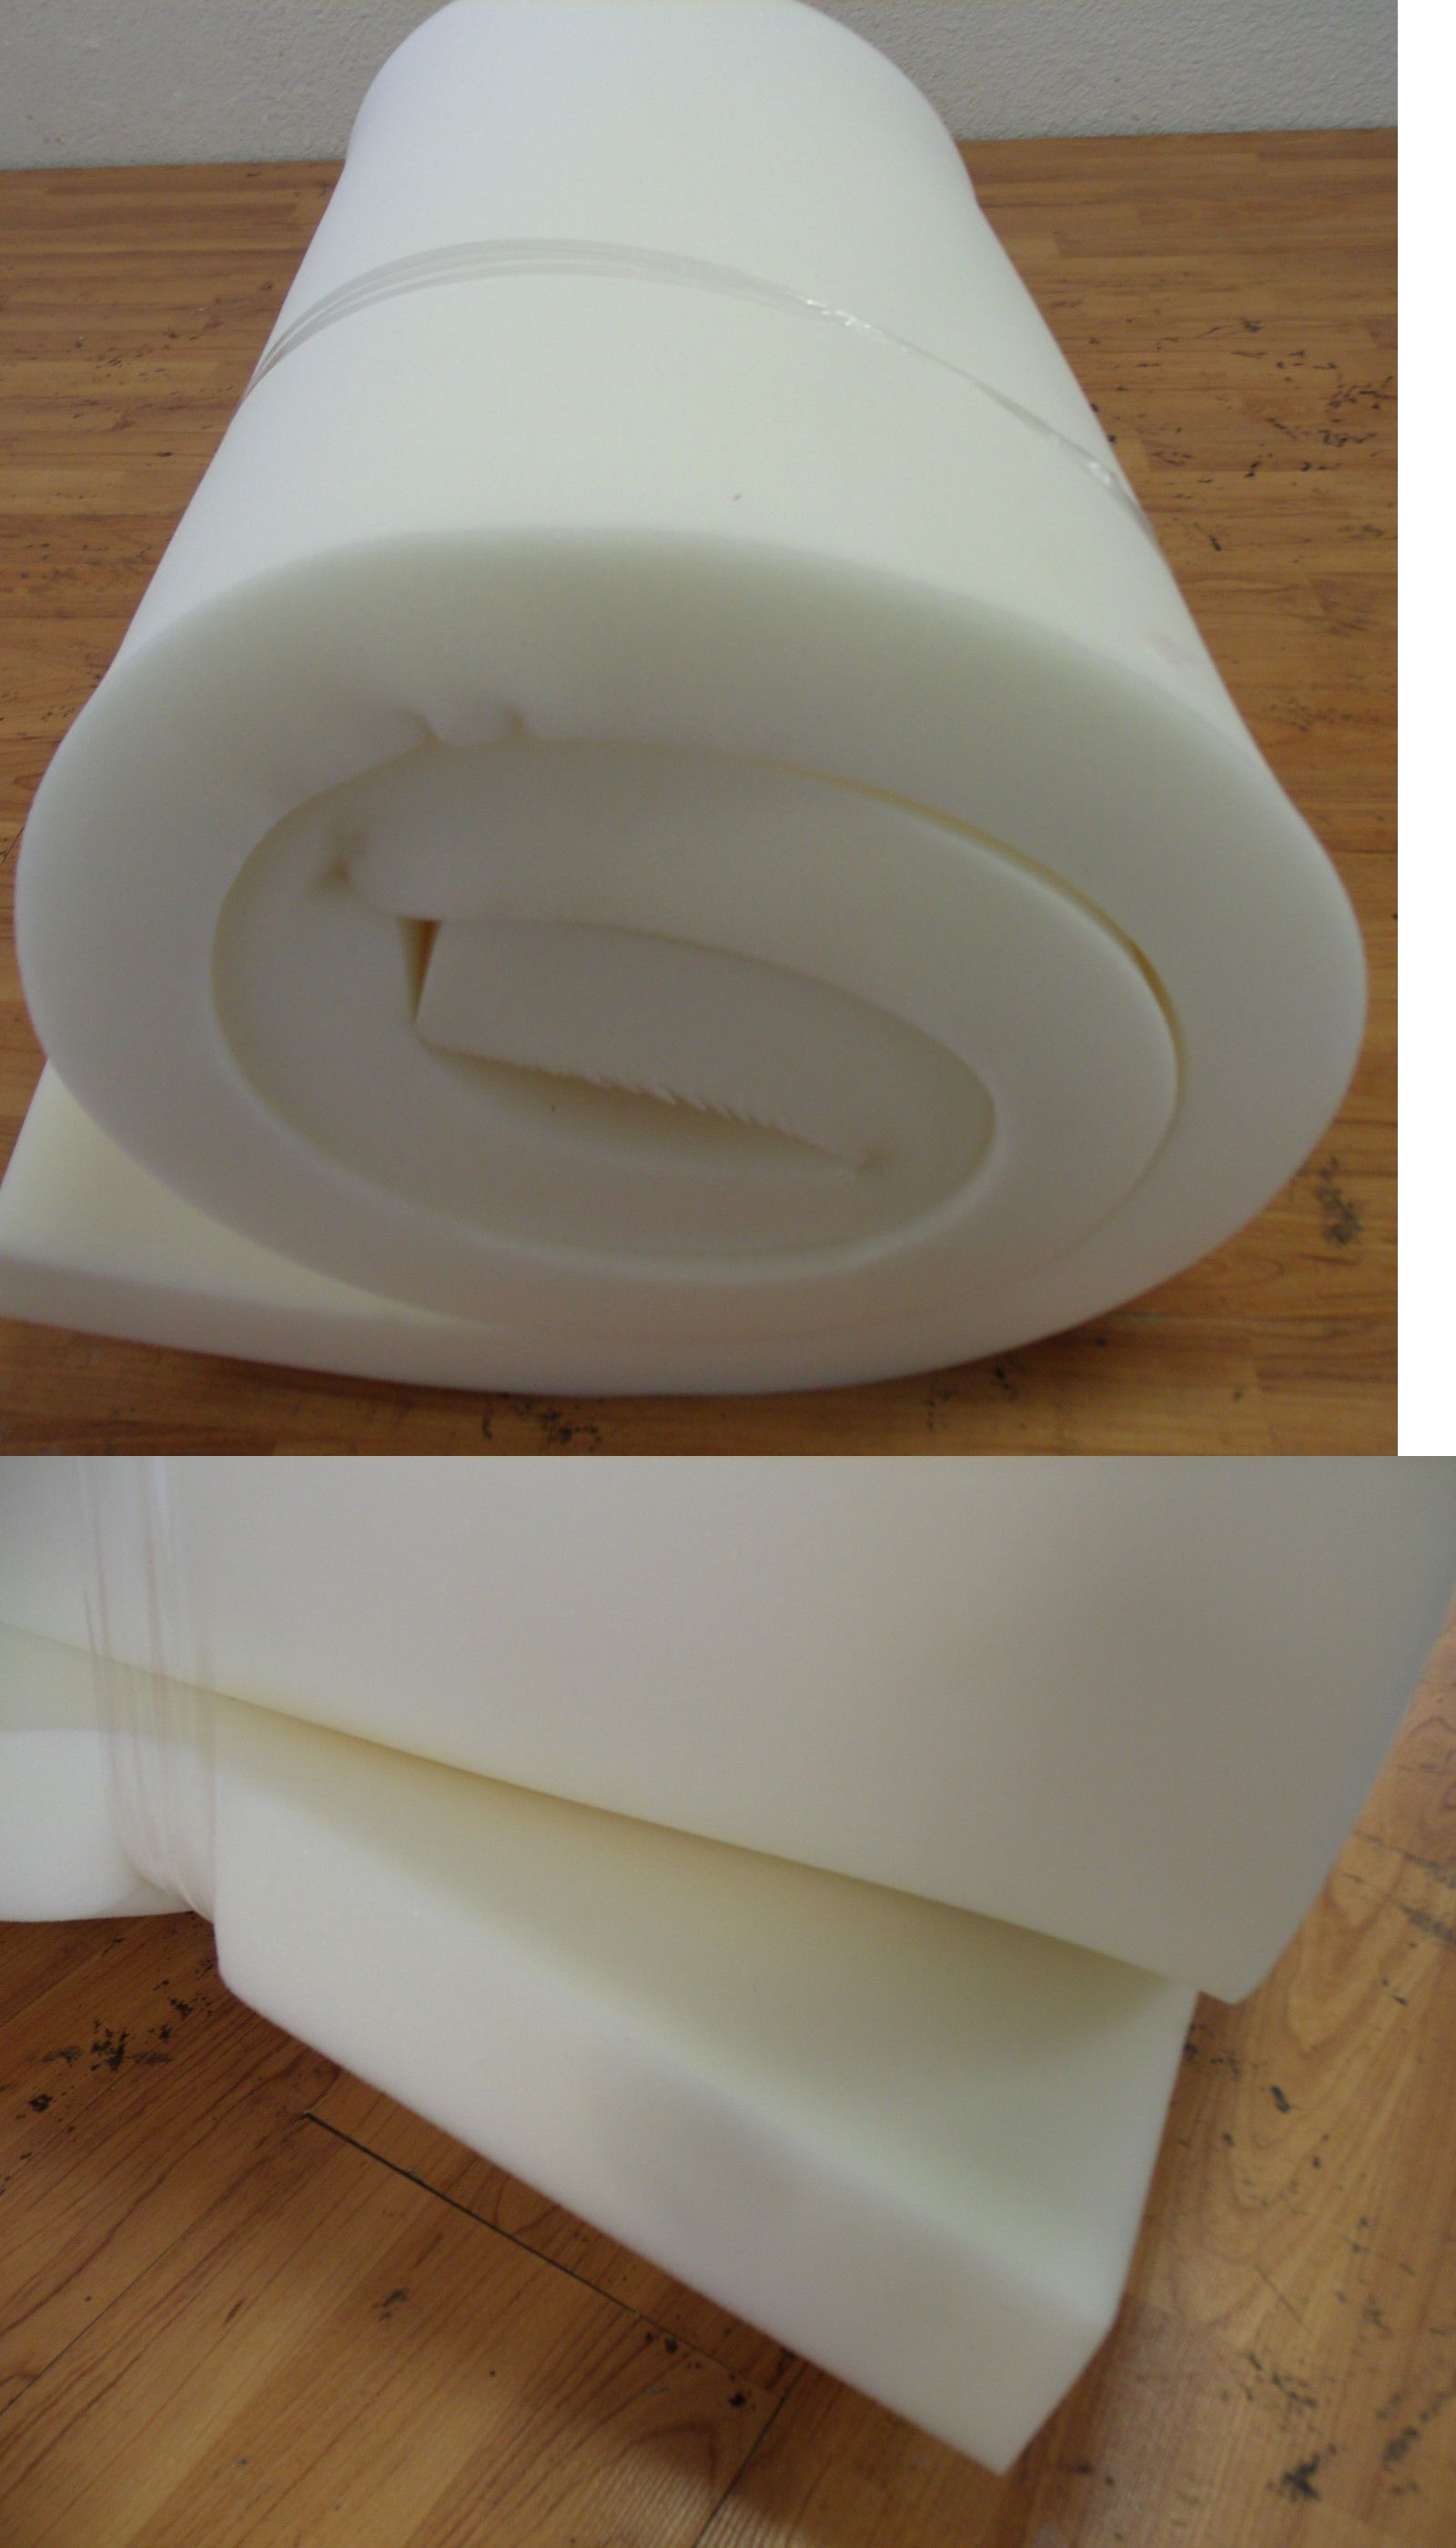 Styrofoam Forms 41200: Foam Med Firm Foam Rubber For Dining Chairs Cushions  And Benches Size